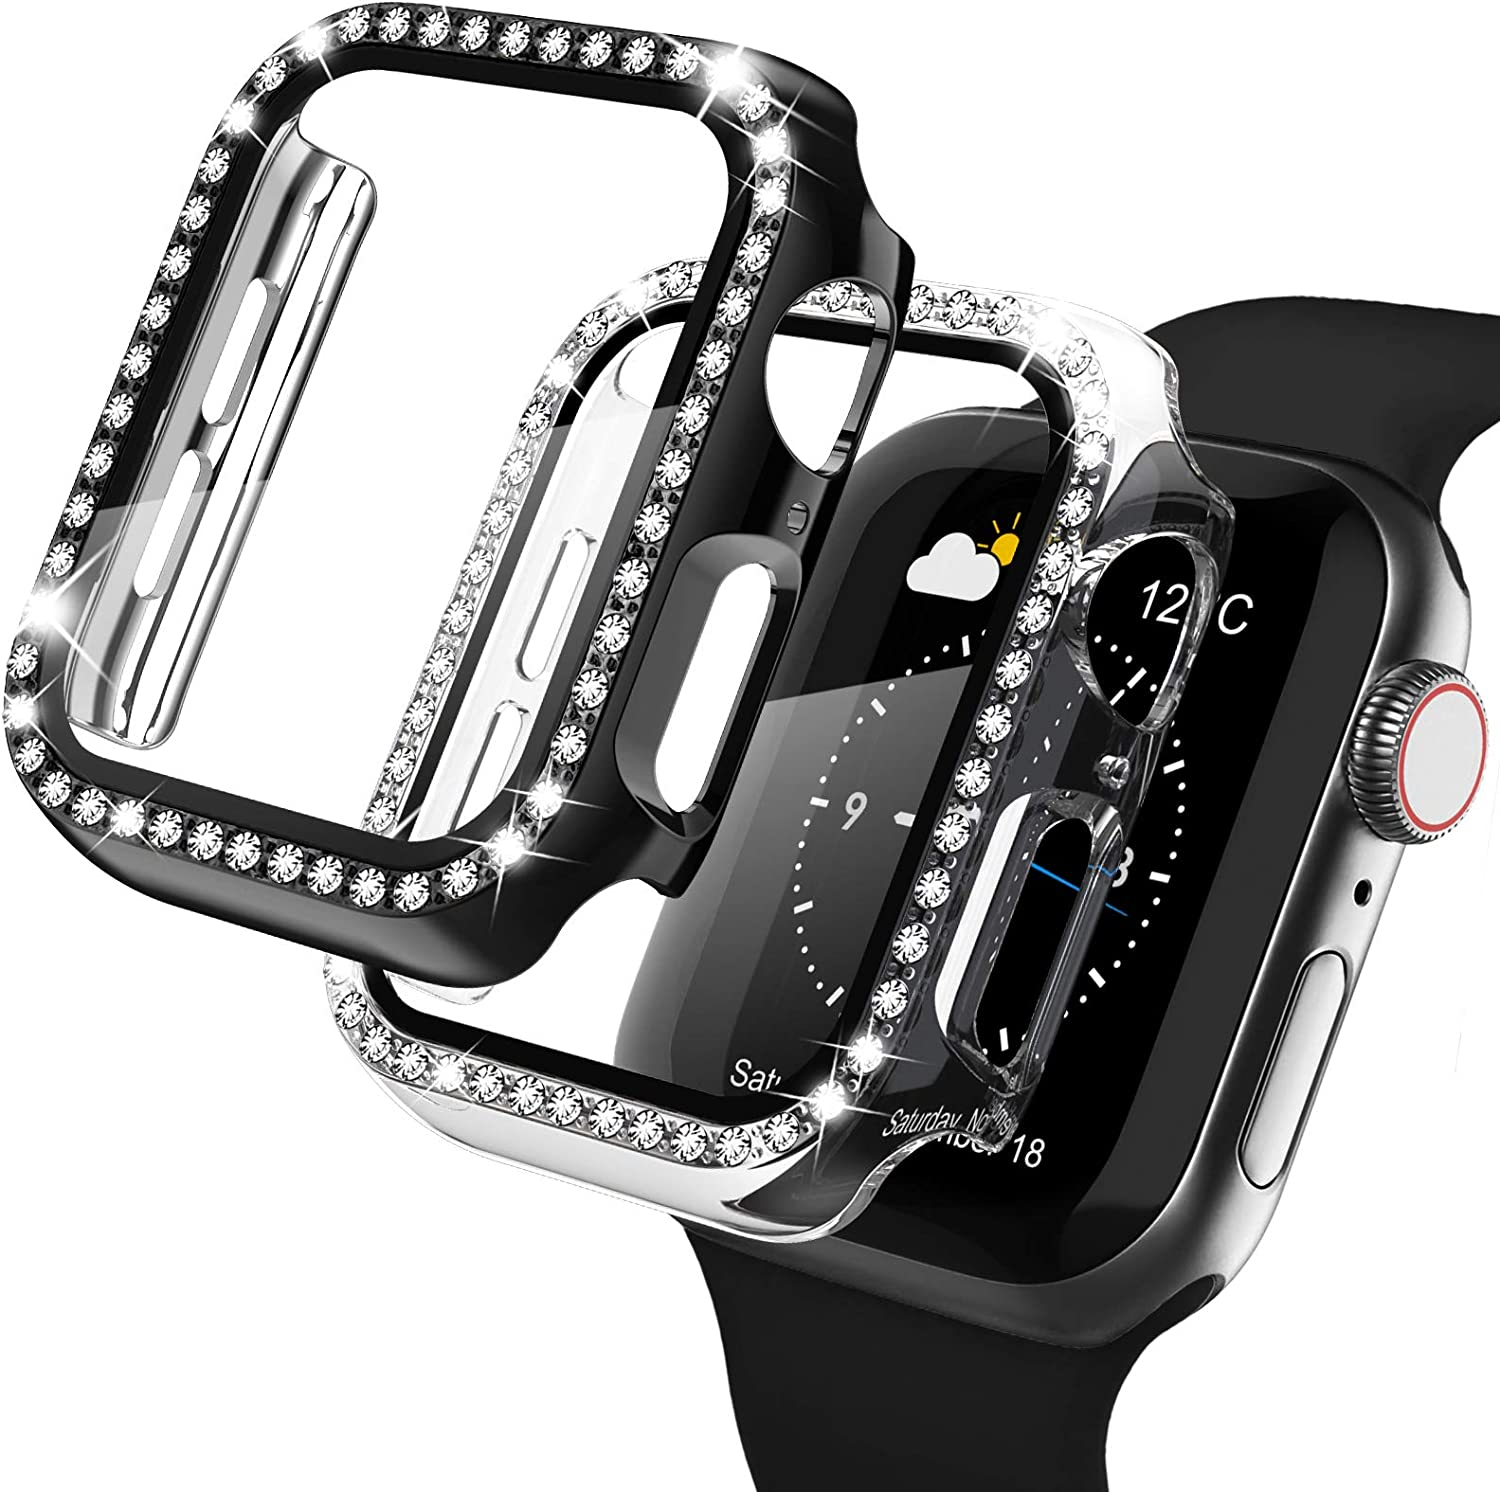 Finally popular brand Recoppa Apple Watch Case Excellent with Protector Screen 4 for